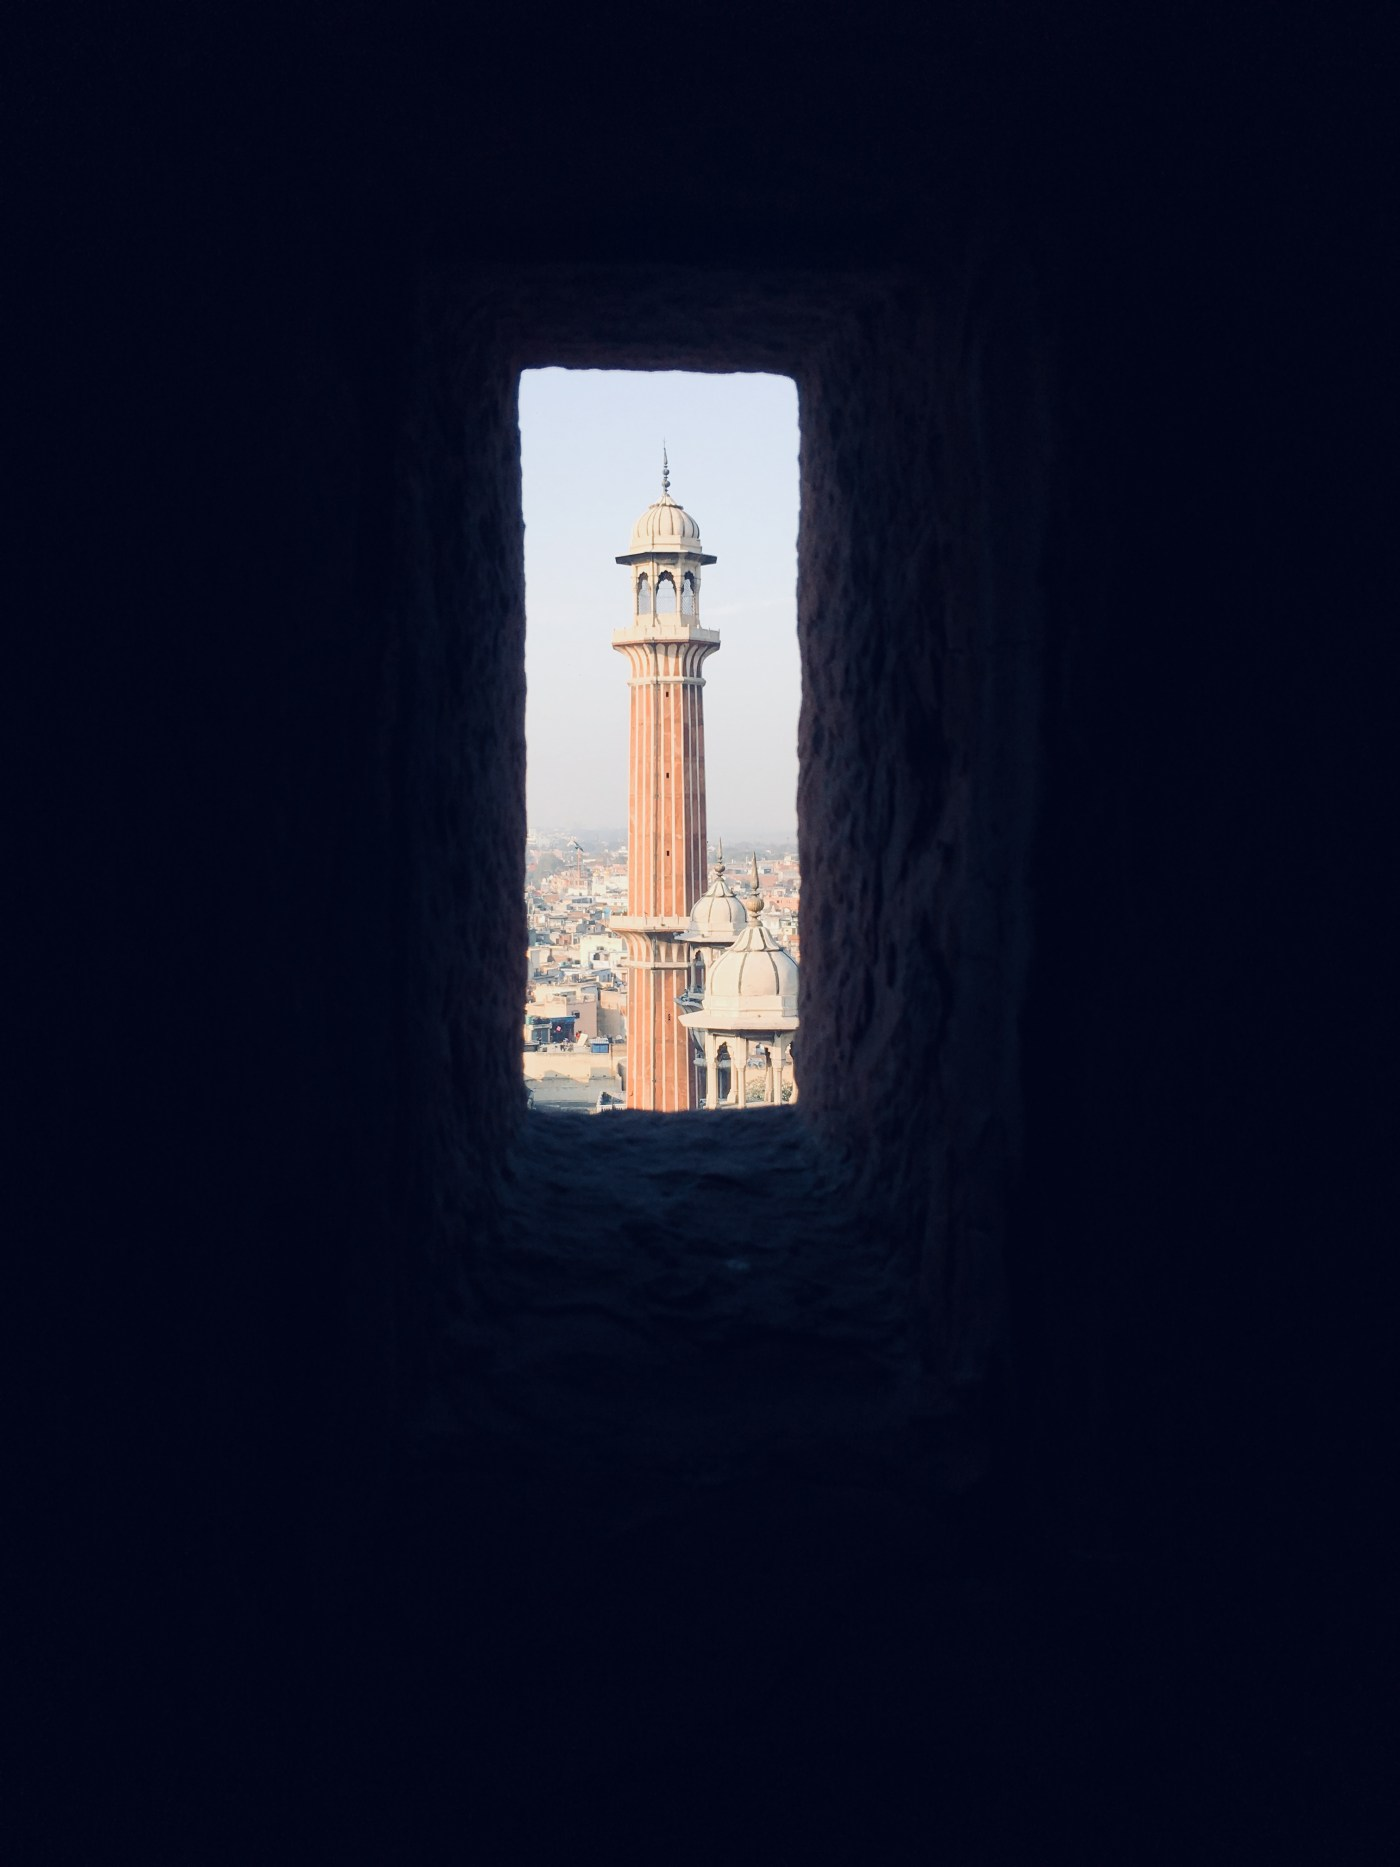 The small window in the Minaret in Jama Masjid | The largest mosque in India